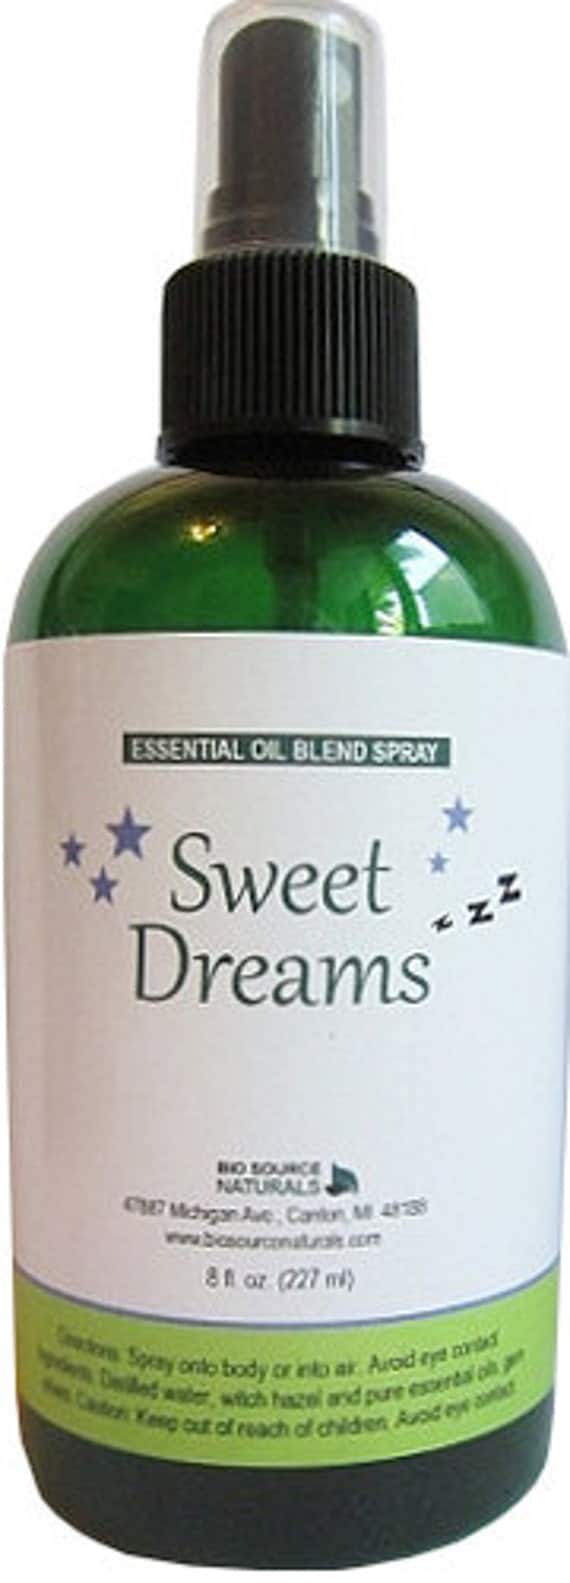 Sweet Dreams Essential Oil Blend Spray with Gem Elixirs & Flower Essences 8 fl. oz / 240 ml